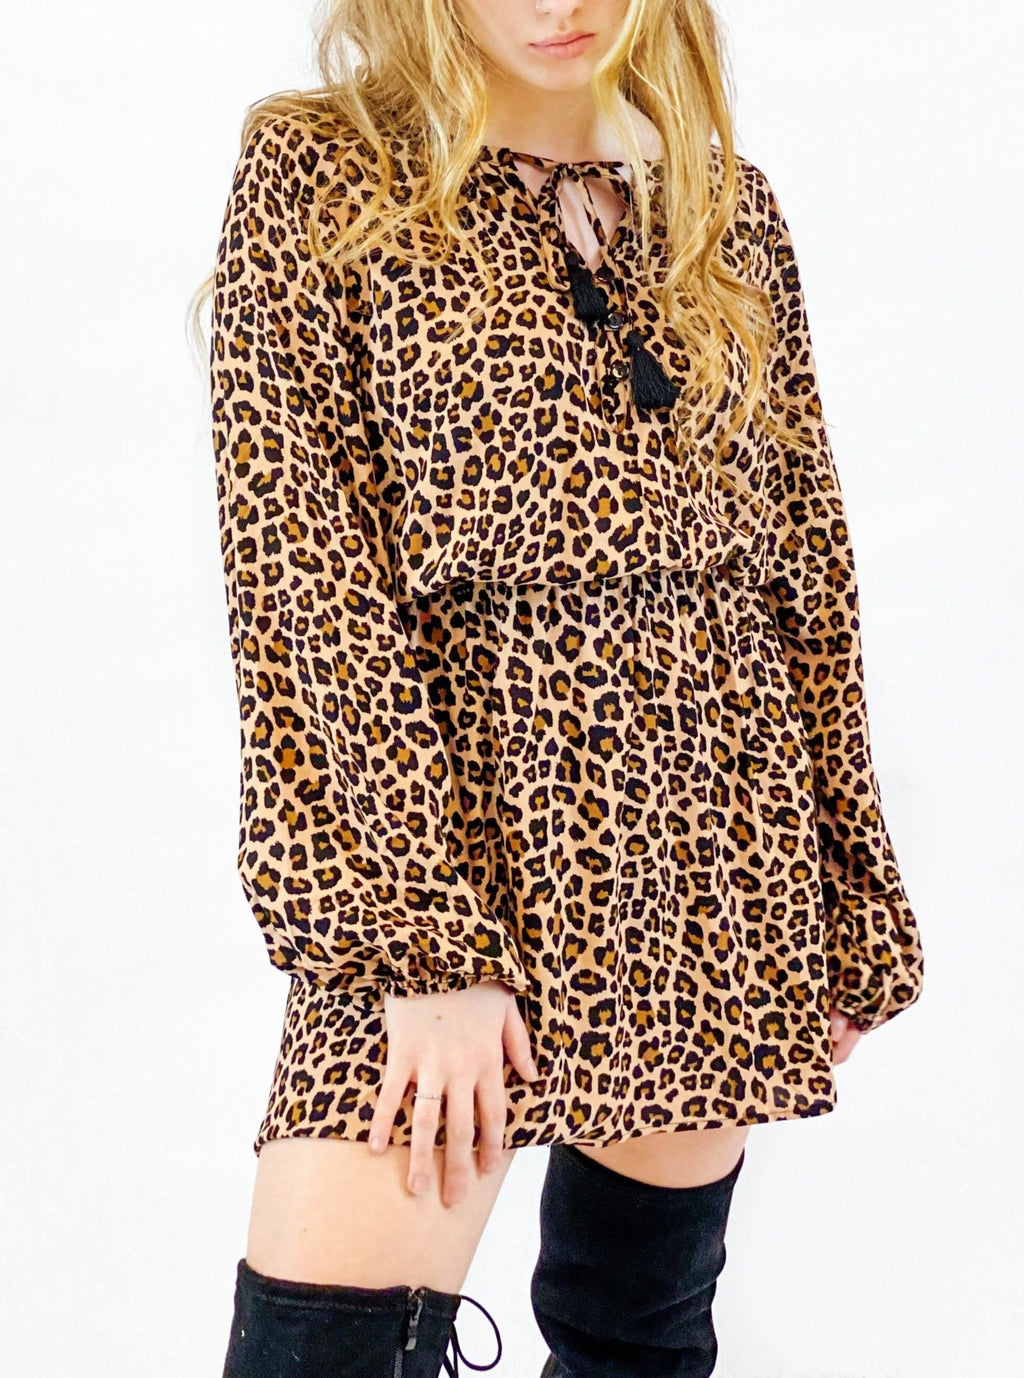 Leopard Tassel Mini Dress - bigcityboutique